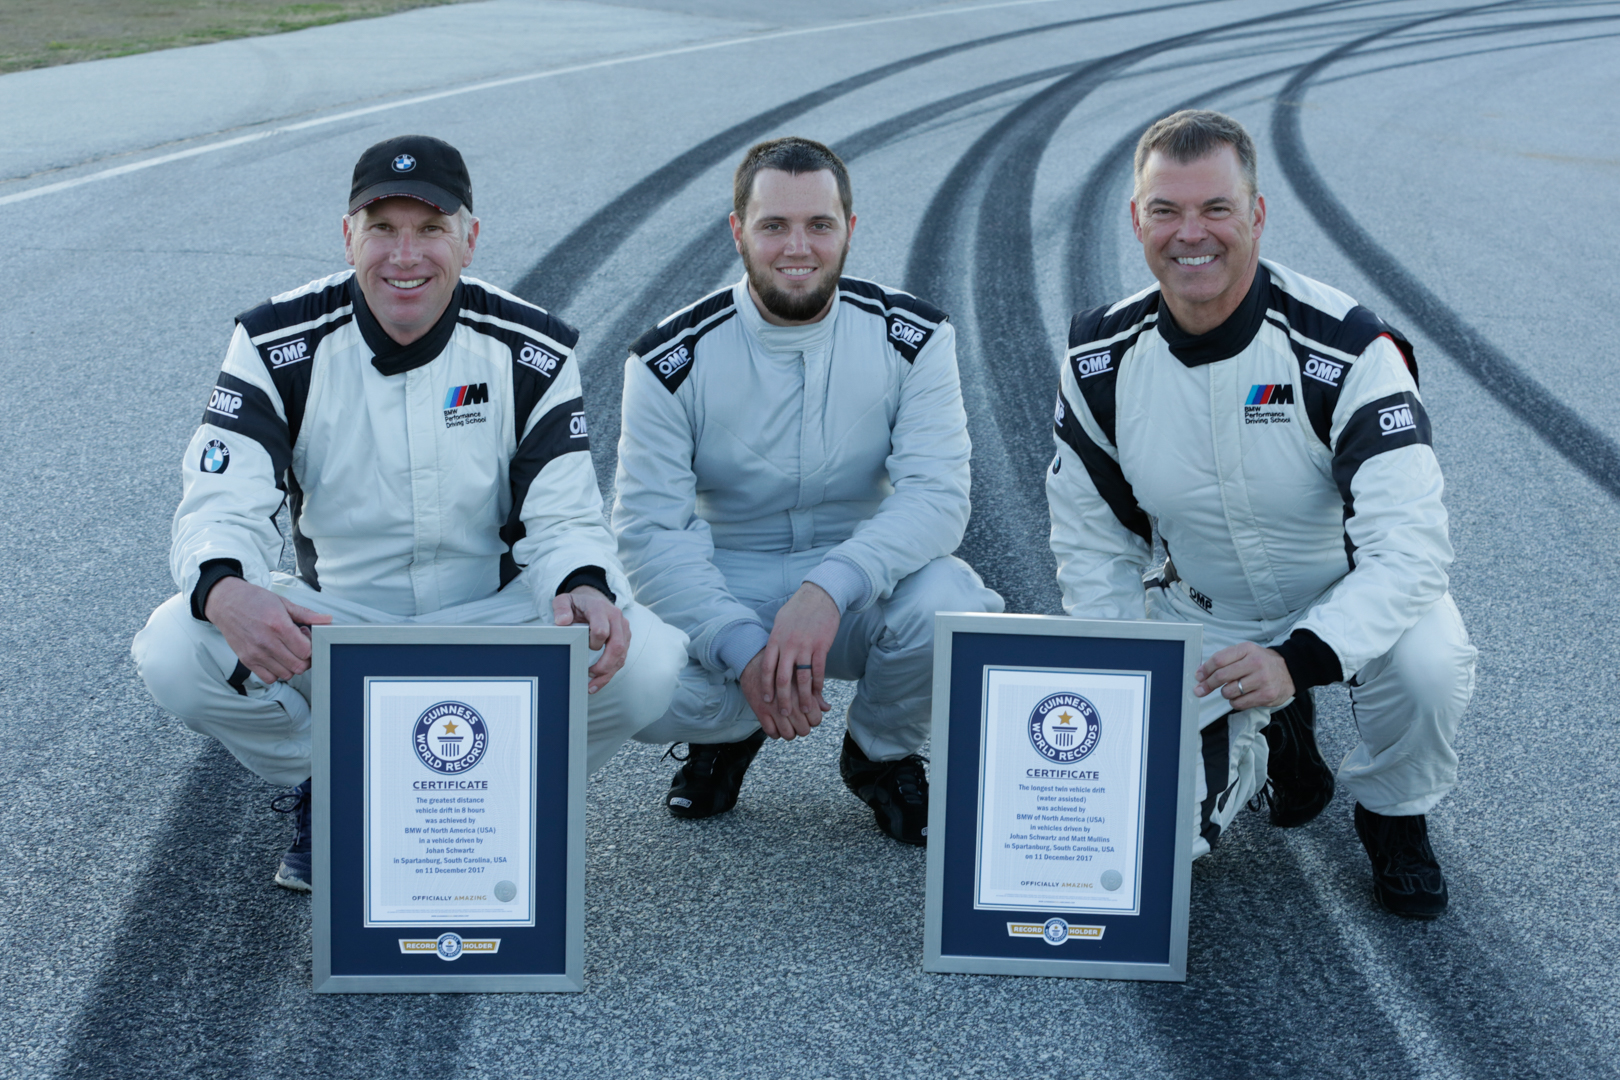 Bmw Sets Two Guinness World Records For Drifting With The